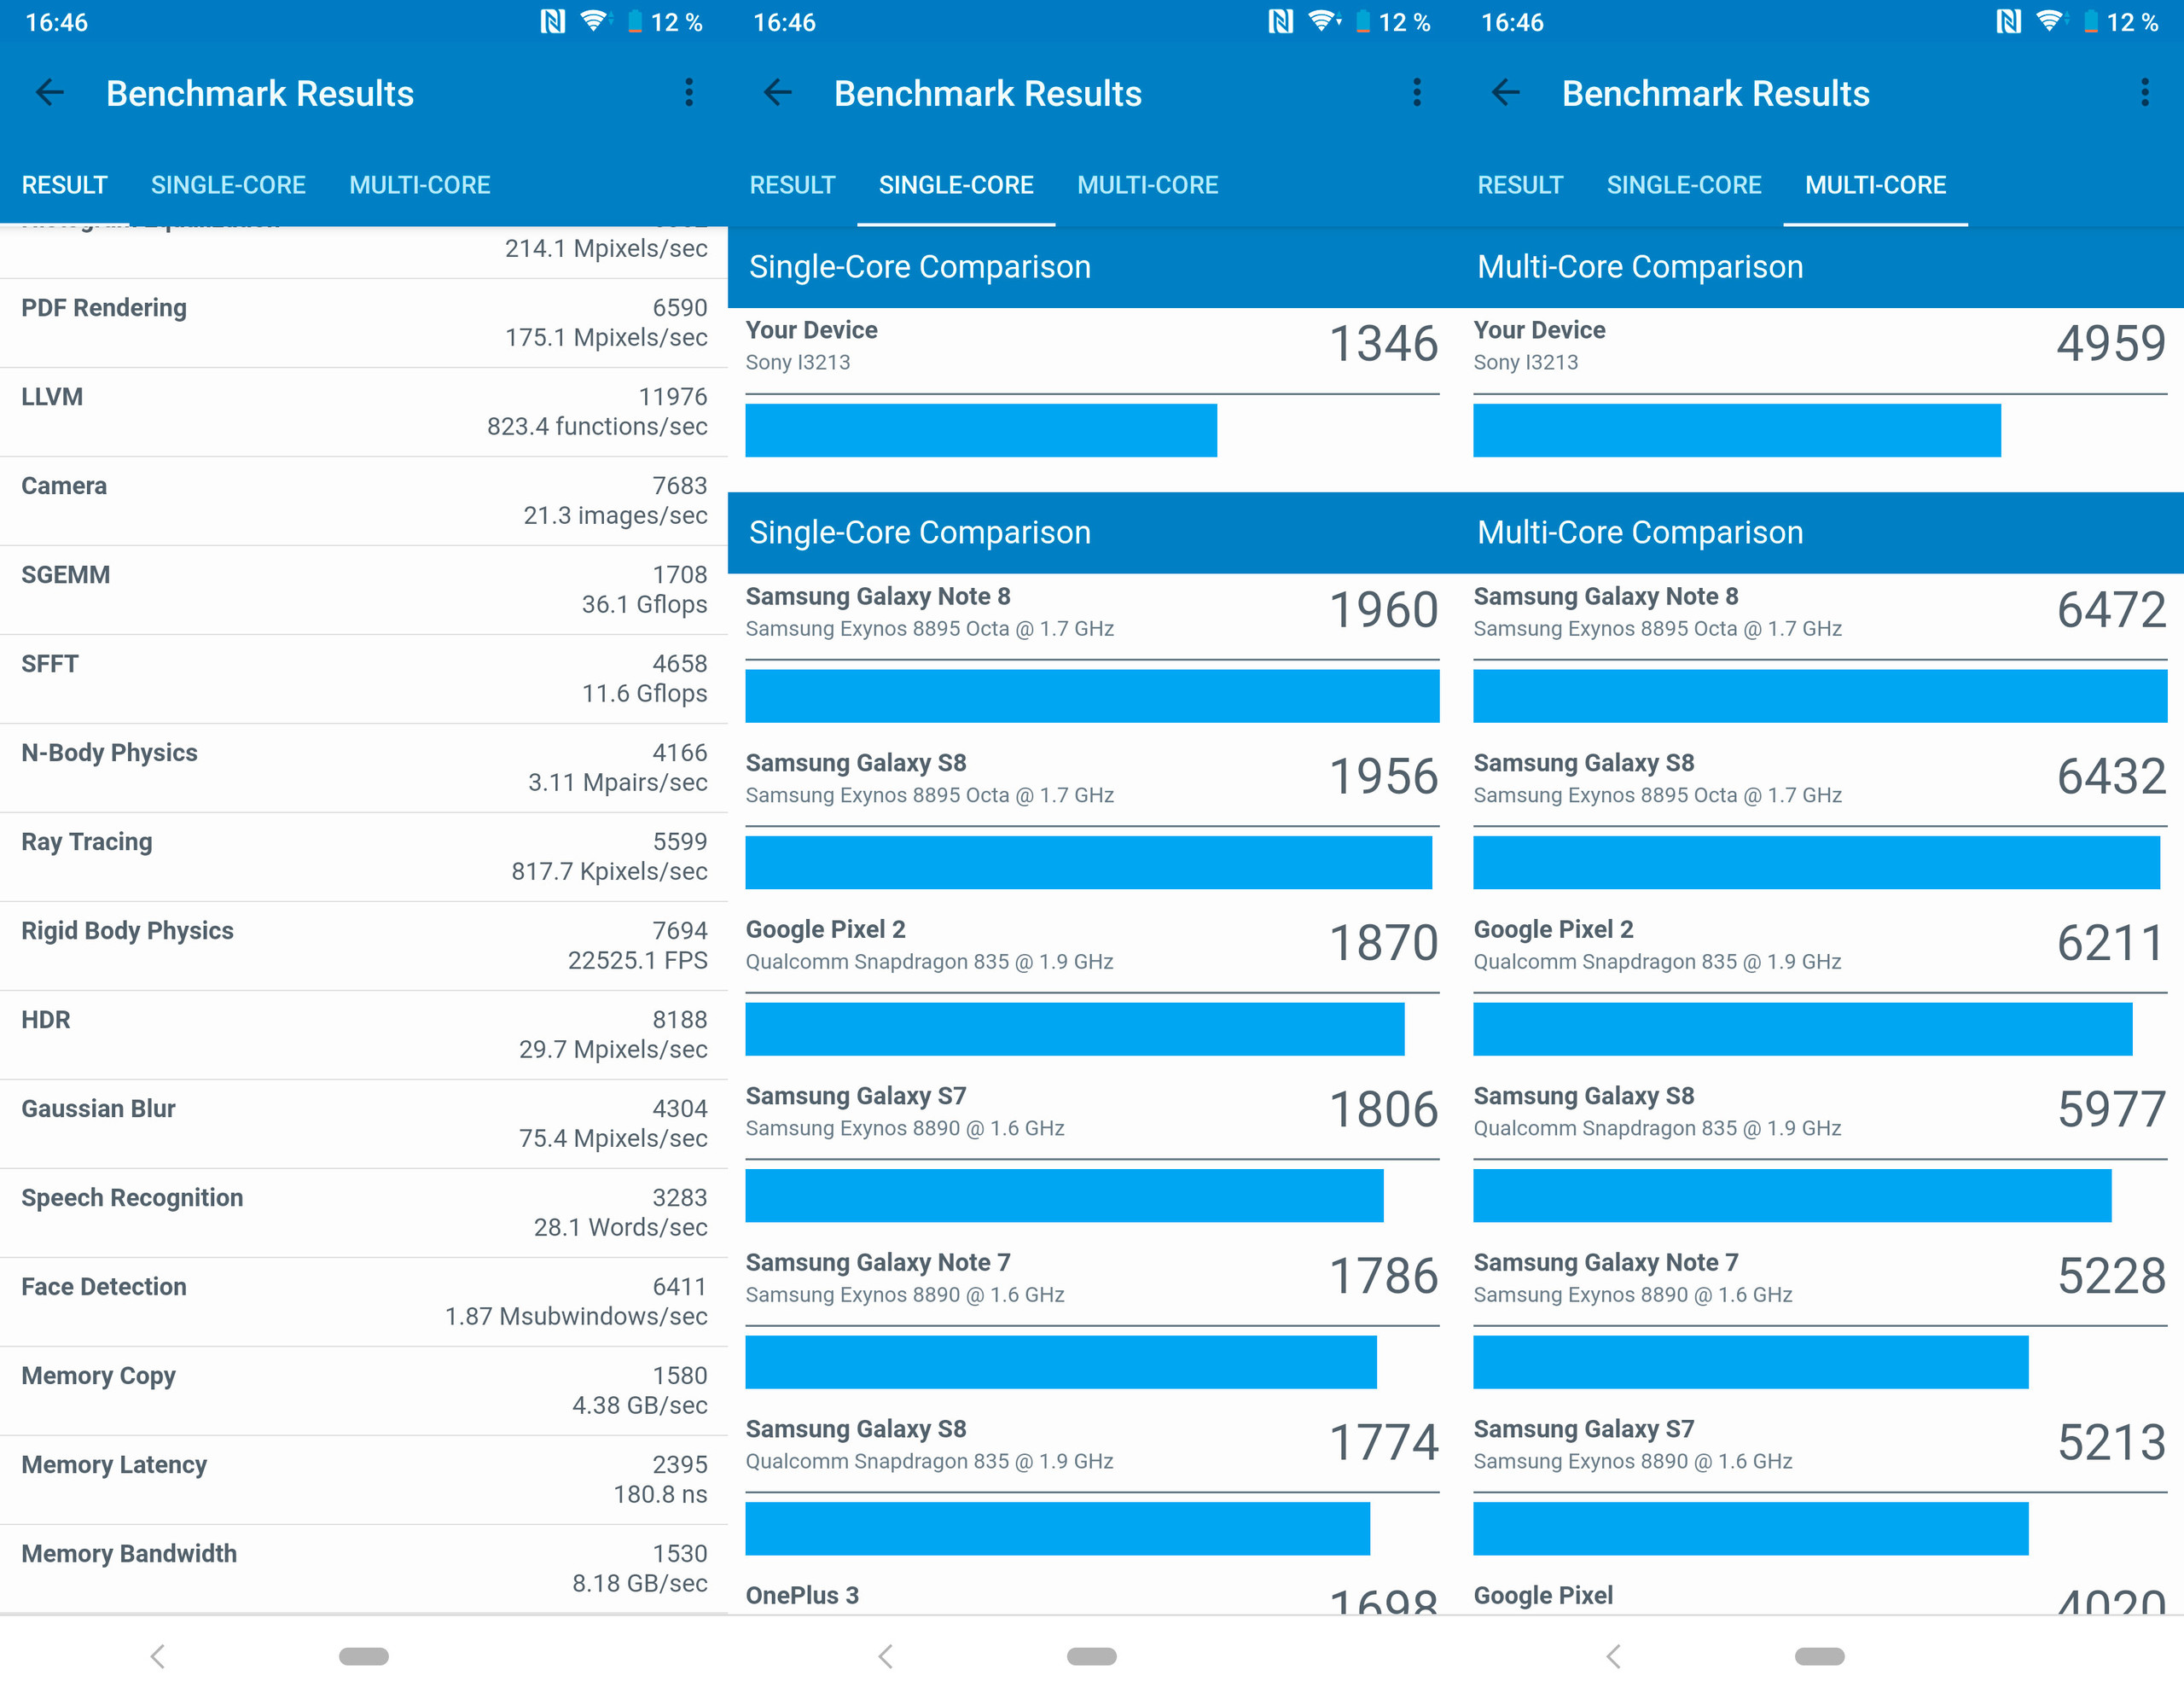 Sony Xperia 10 Plus, benchmarks